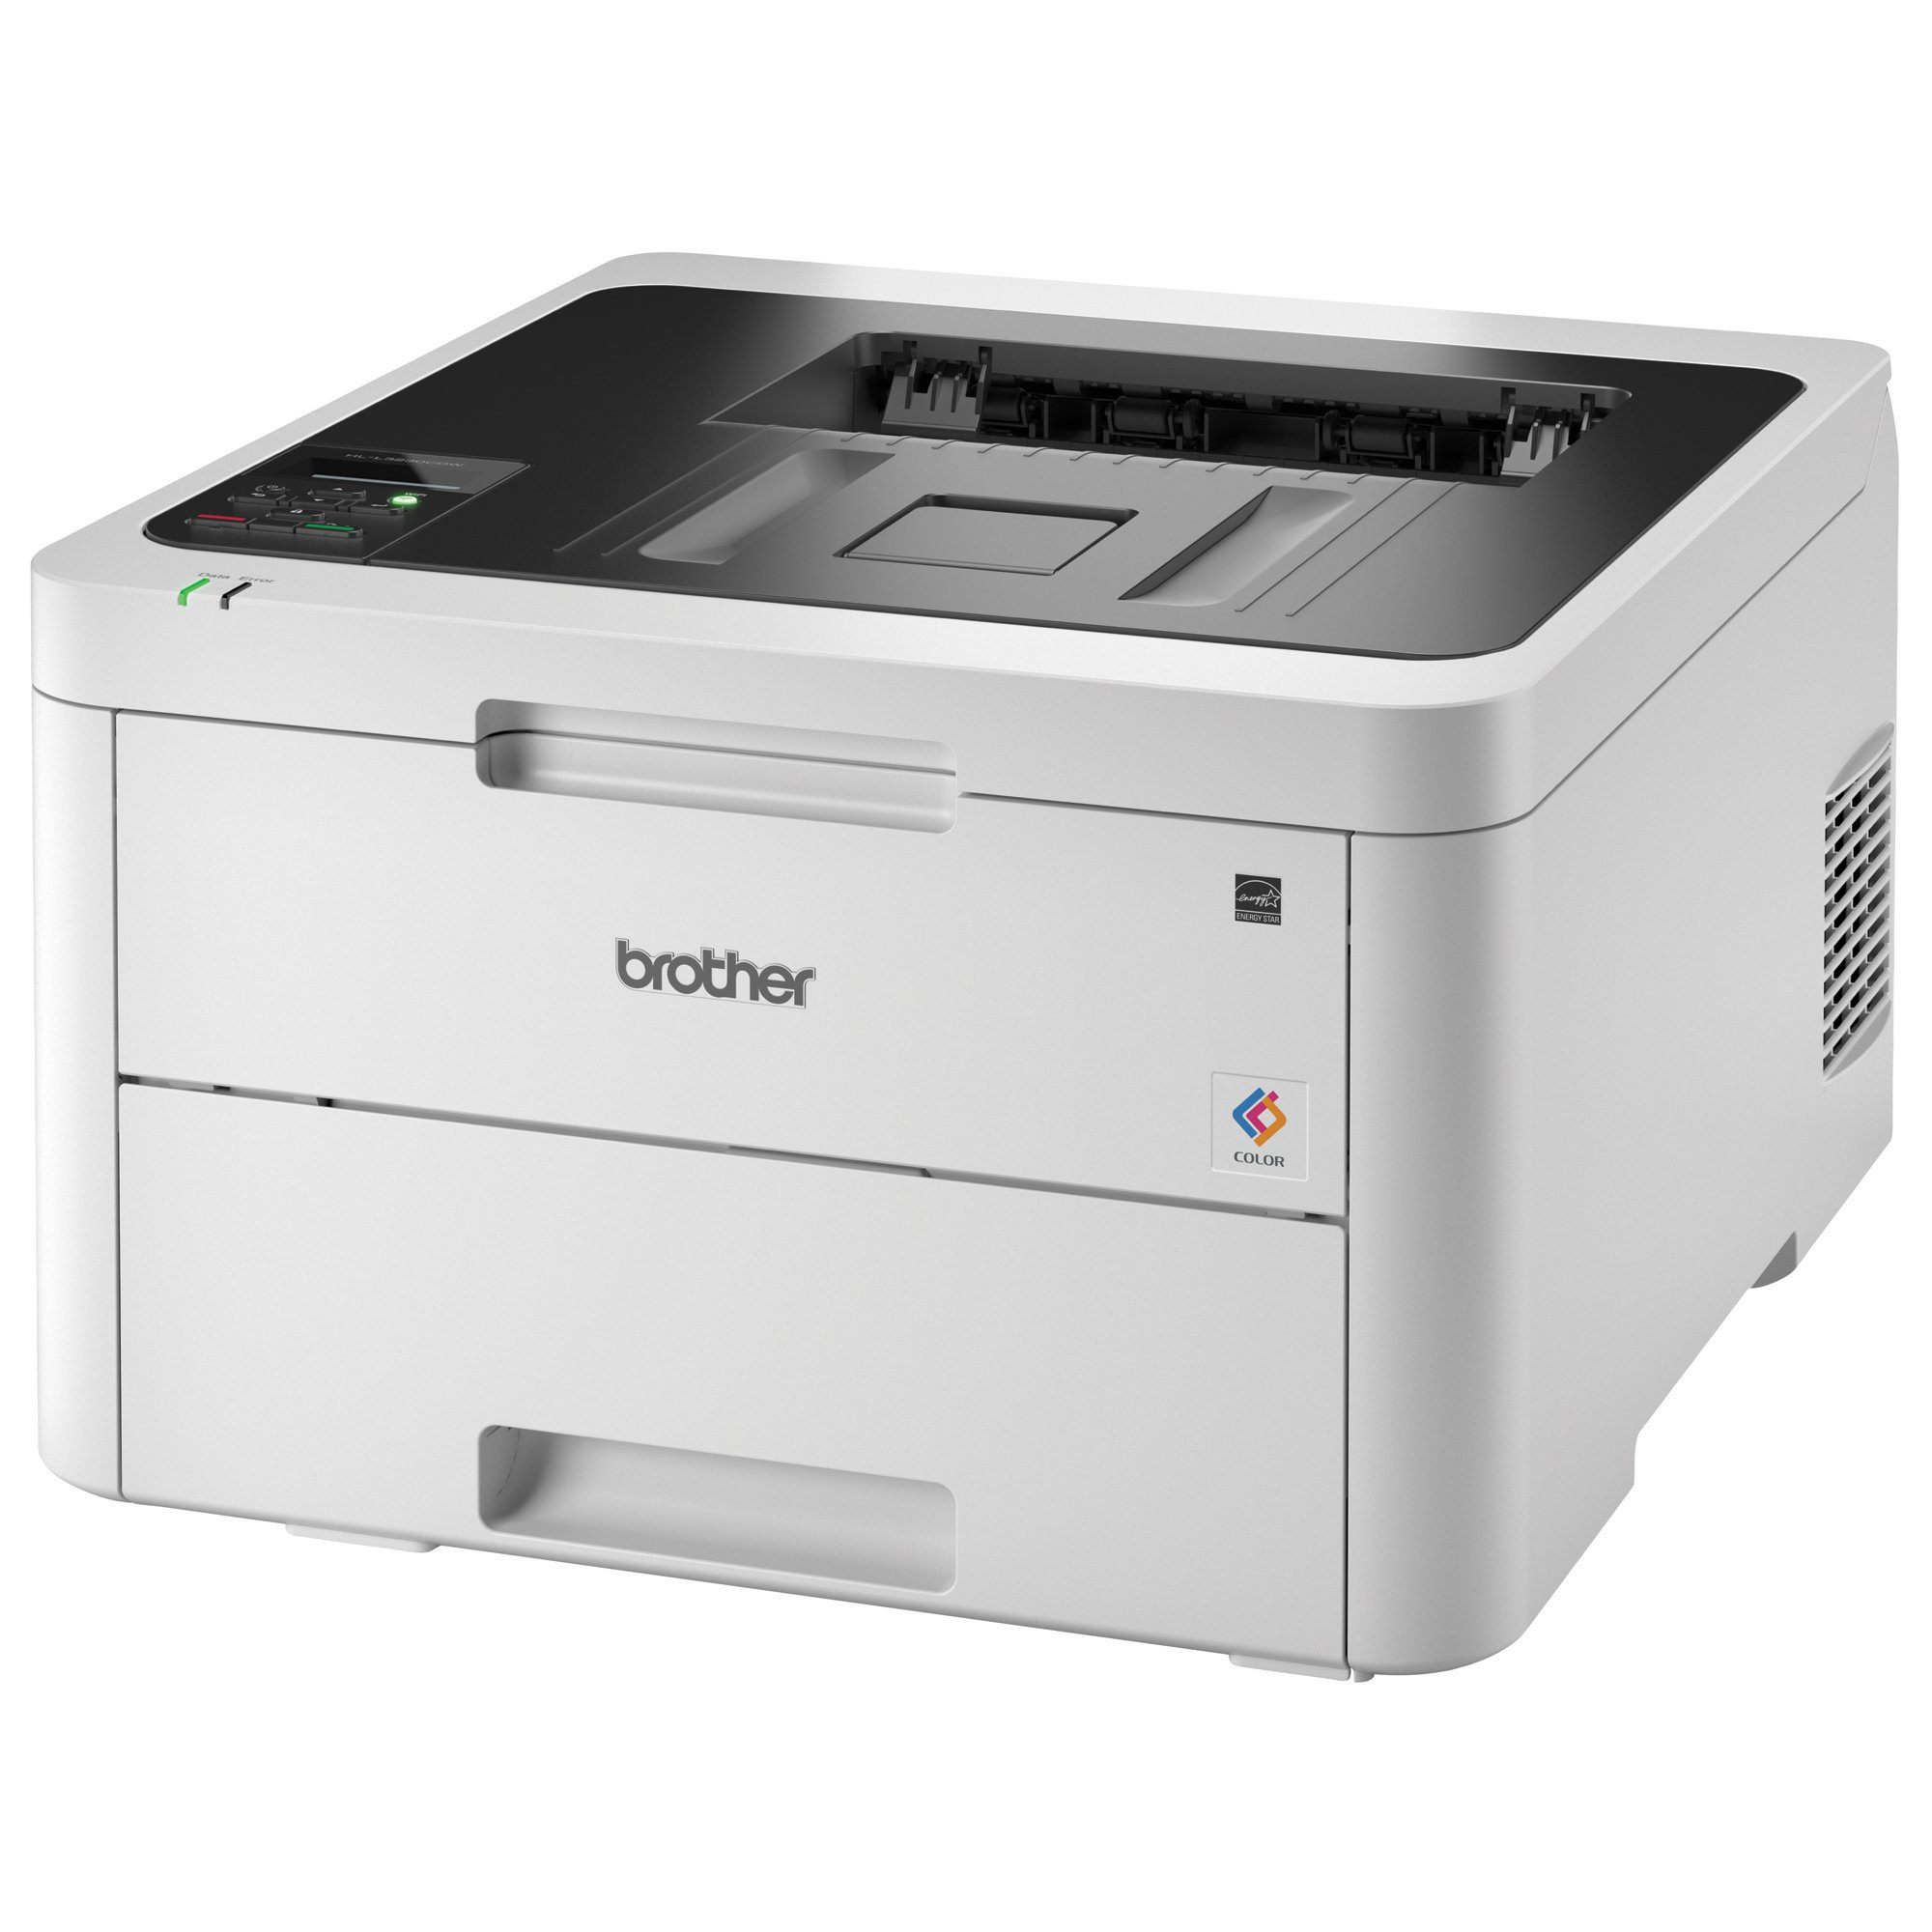 Brother HL-L3230CDW Compact Digital Color Printer Providing Laser Printer Quality Results with Wireless Printing and Duplex Printing, Amazon Dash Replenishment Enabled by Brother (Image #3)